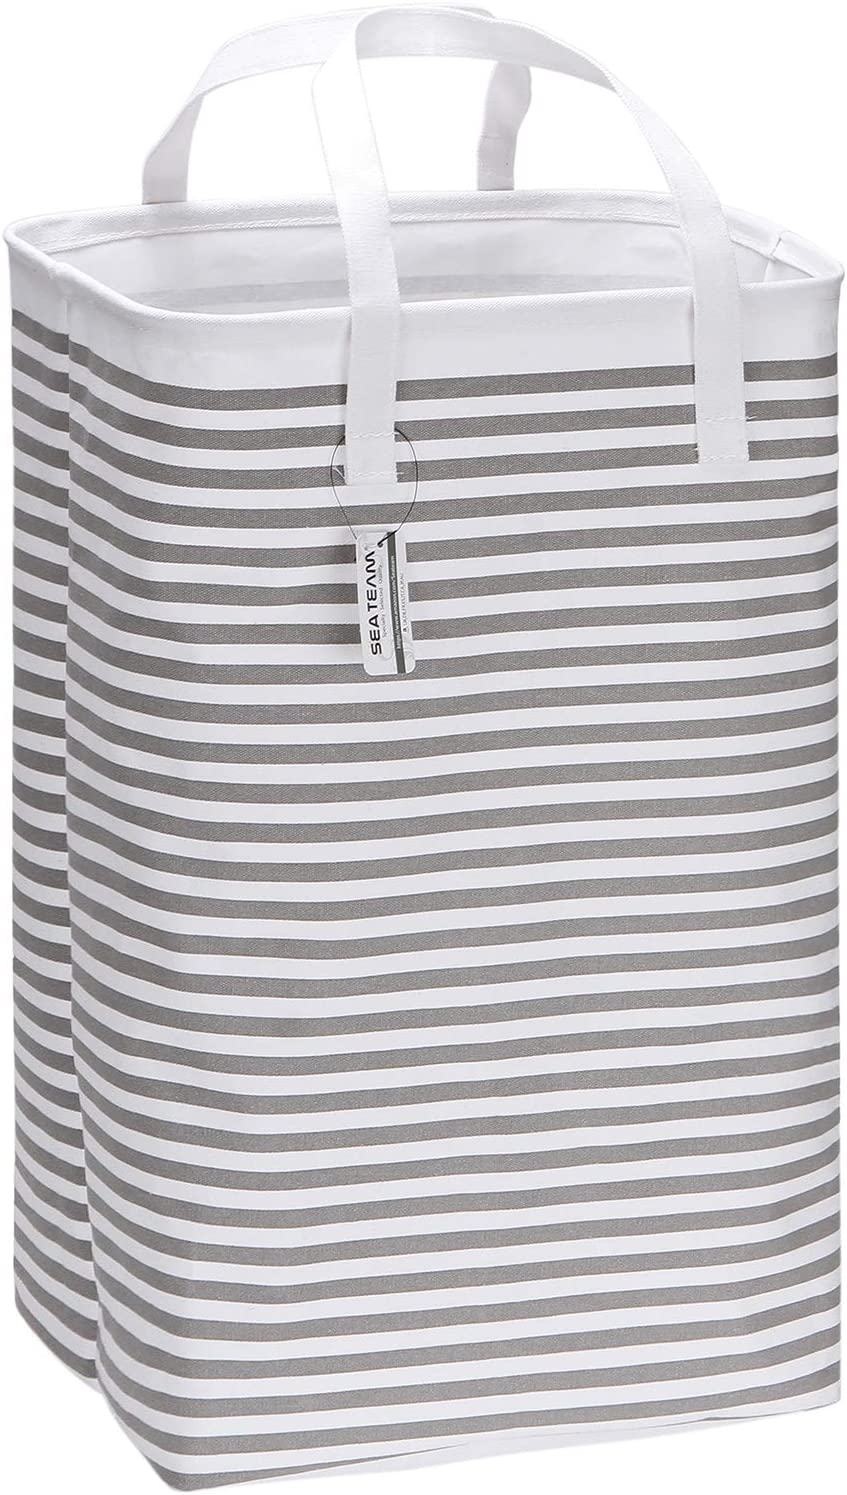 "Sea Team 23.6"" Large Size Canvas Fabric Laundry Hamper Collapsible Rectangular Storage Basket with Waterproof Coating Inner and Handles, Grey & White Stripe"